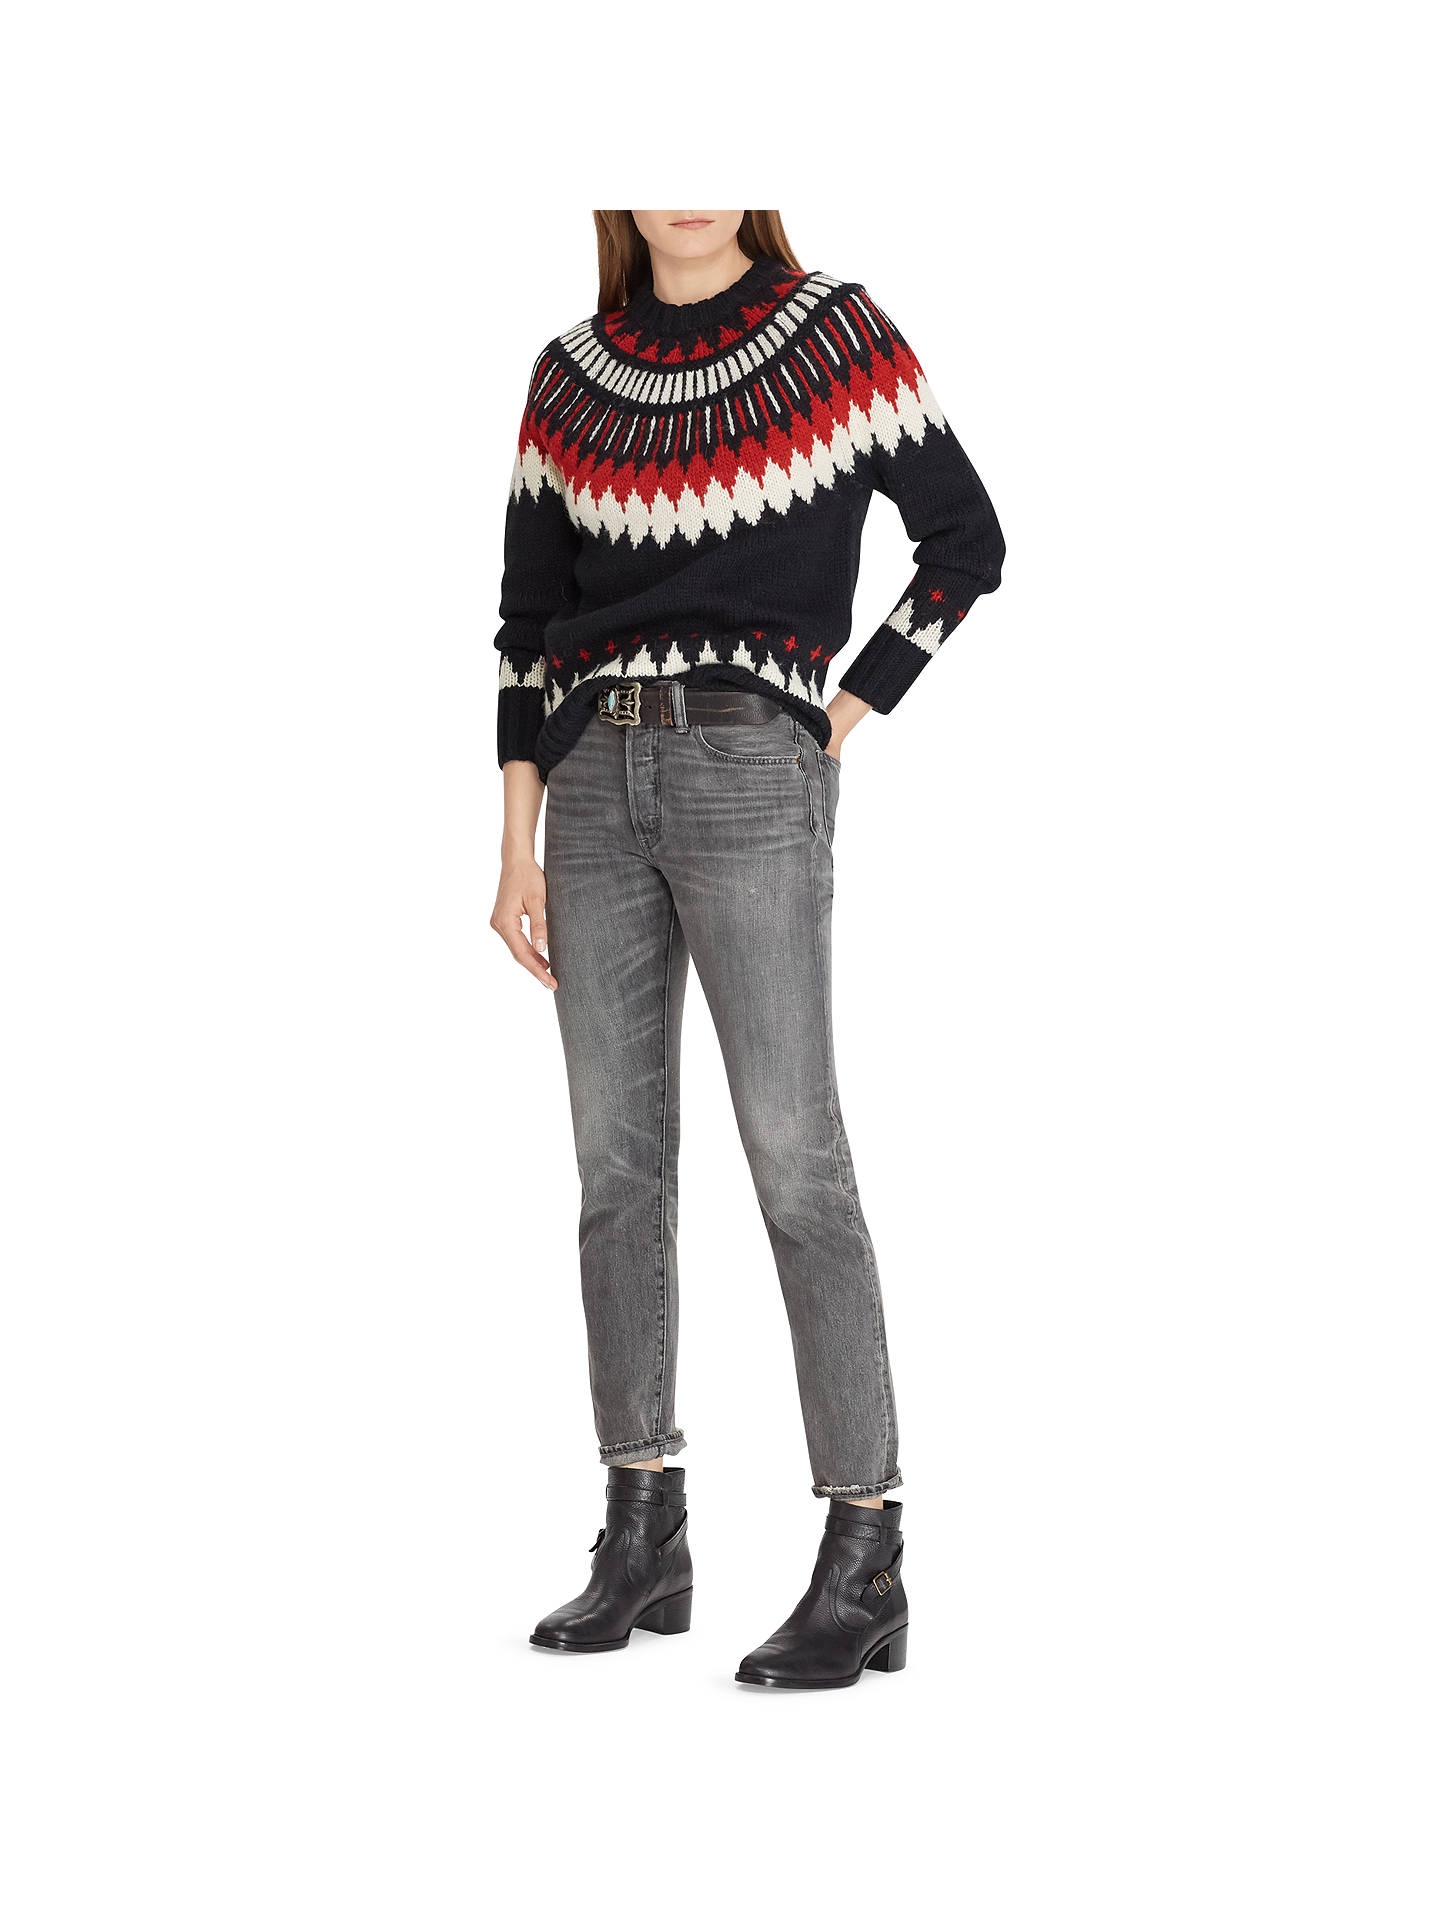 BuyPolo Ralph Lauren Wool Blend Jumper, Black/Red, XS Online at johnlewis.com